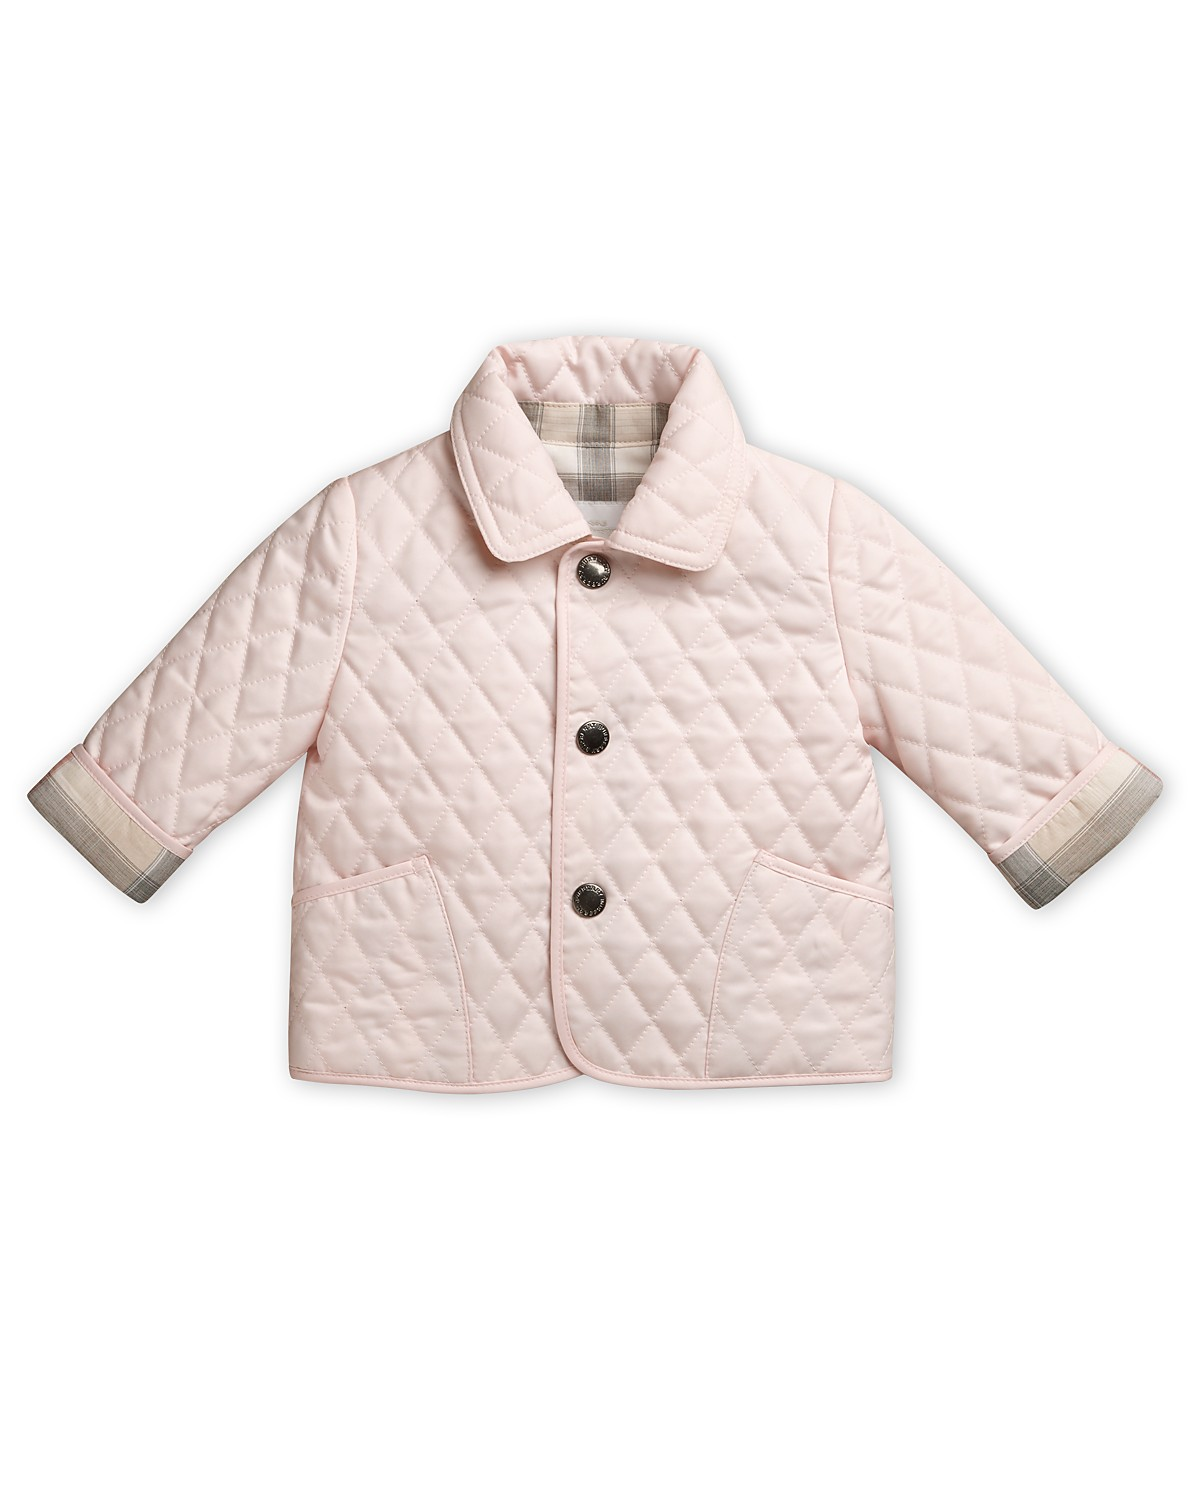 Burberry Childrens Quilted Jacket Equata The Best Jacket 2018